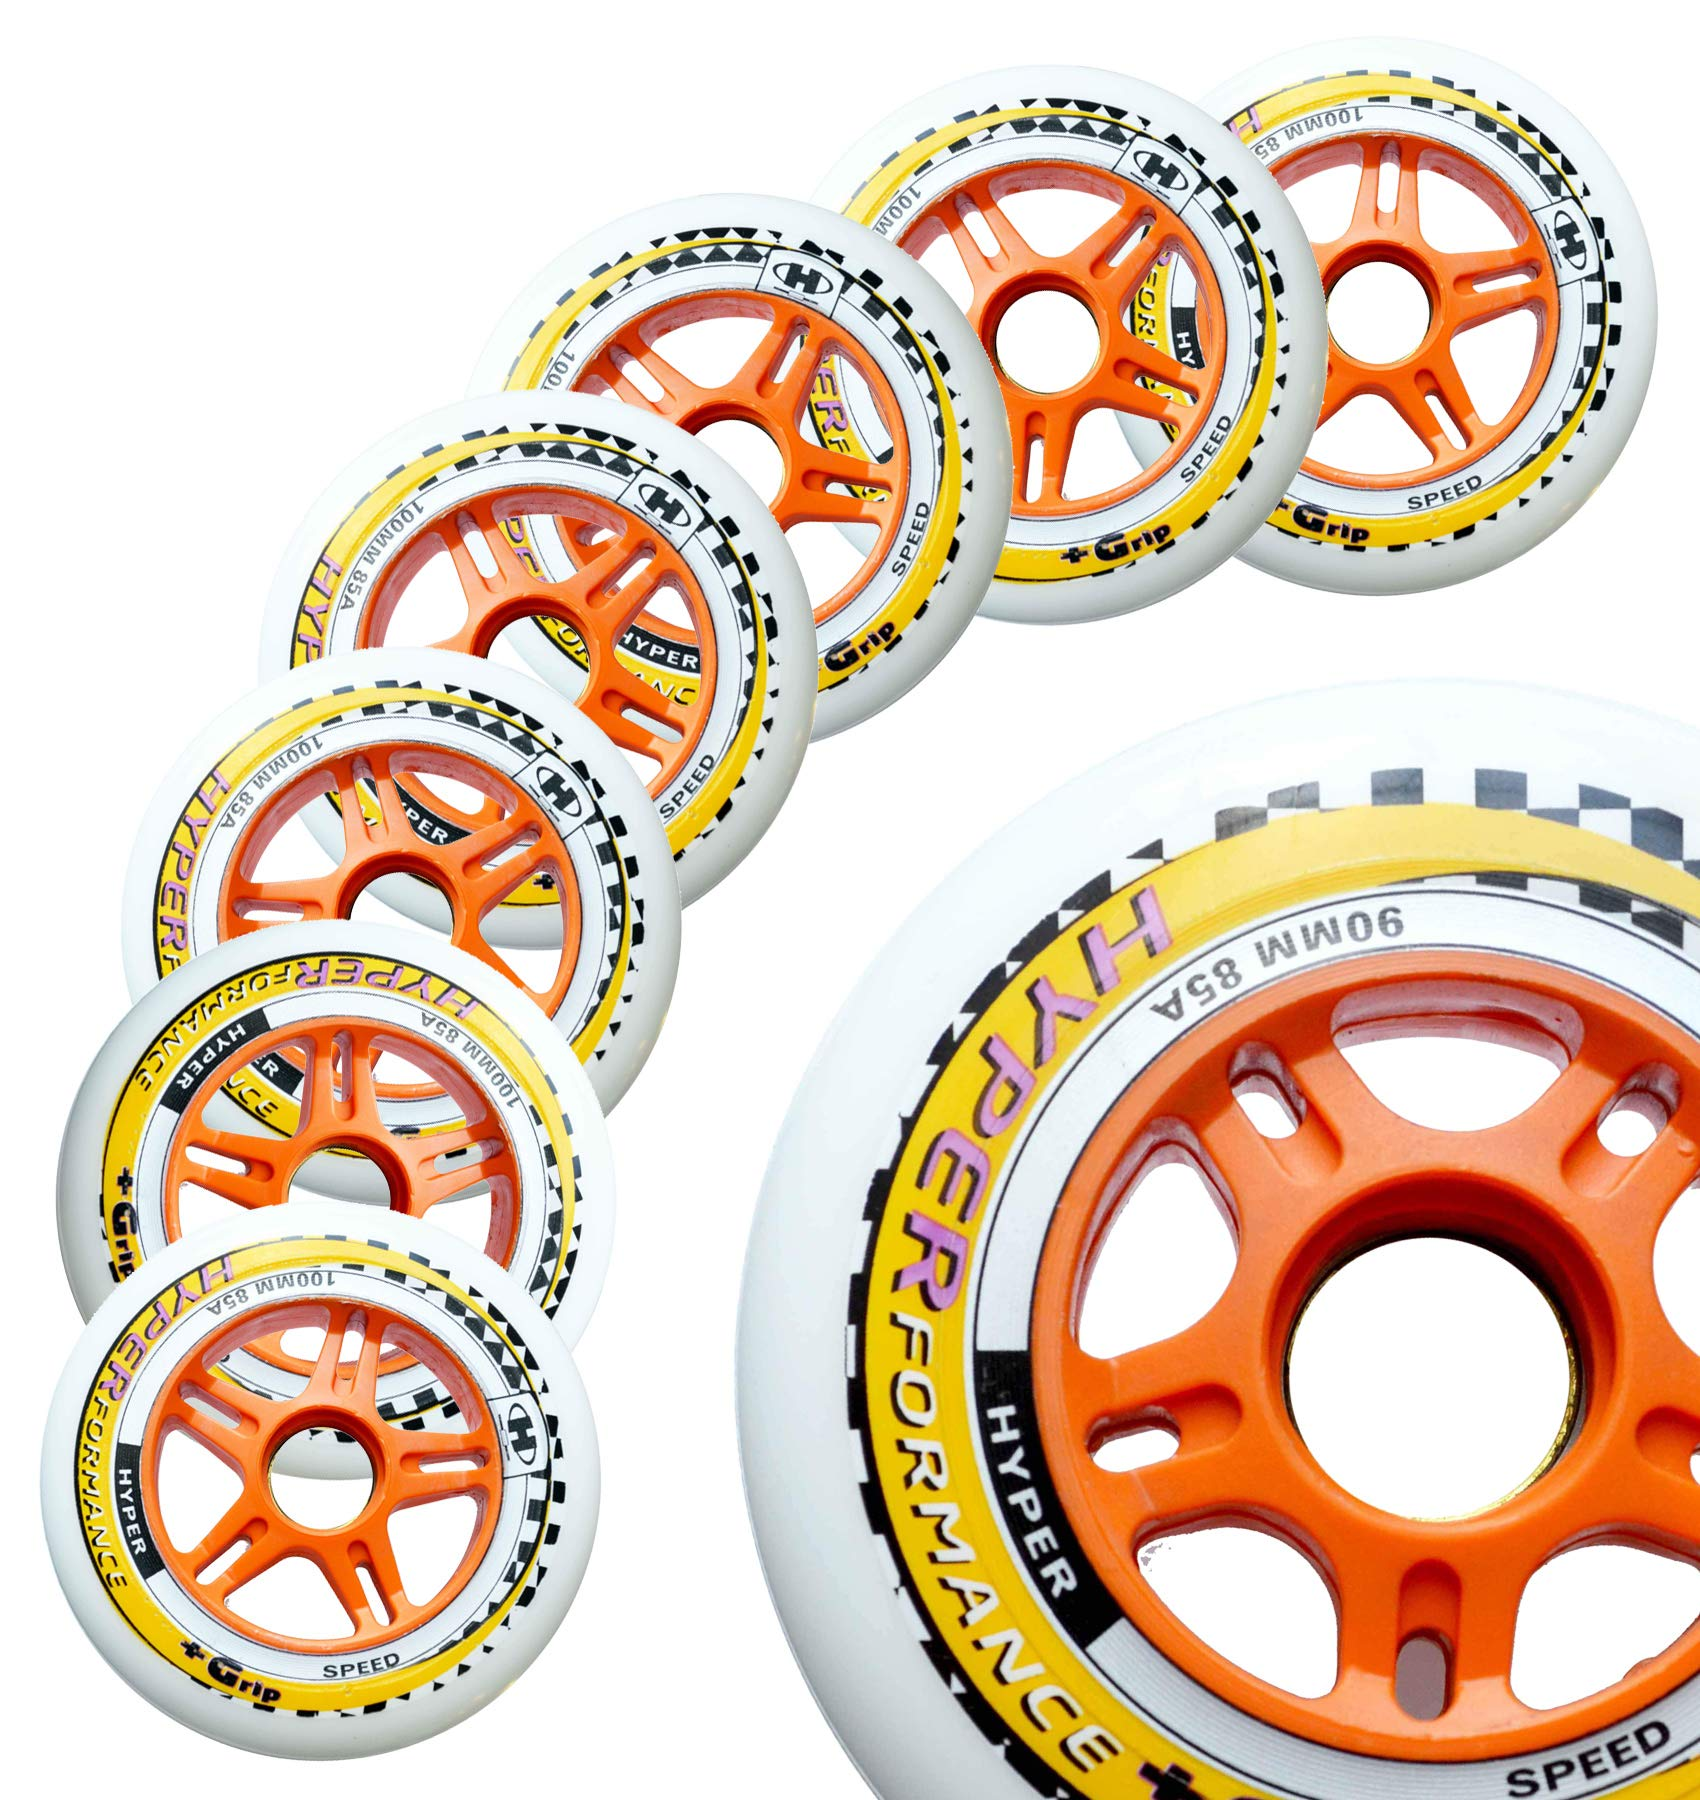 Inline Race Skate Wheels Hyper HYPERFORMANCE+G - 8 Wheels - 85A - Sizes: 84MM, 90MM, 100MM, 110MM - Speed Skating, Fitness and Outdoor Recreational Wheels (90MM)